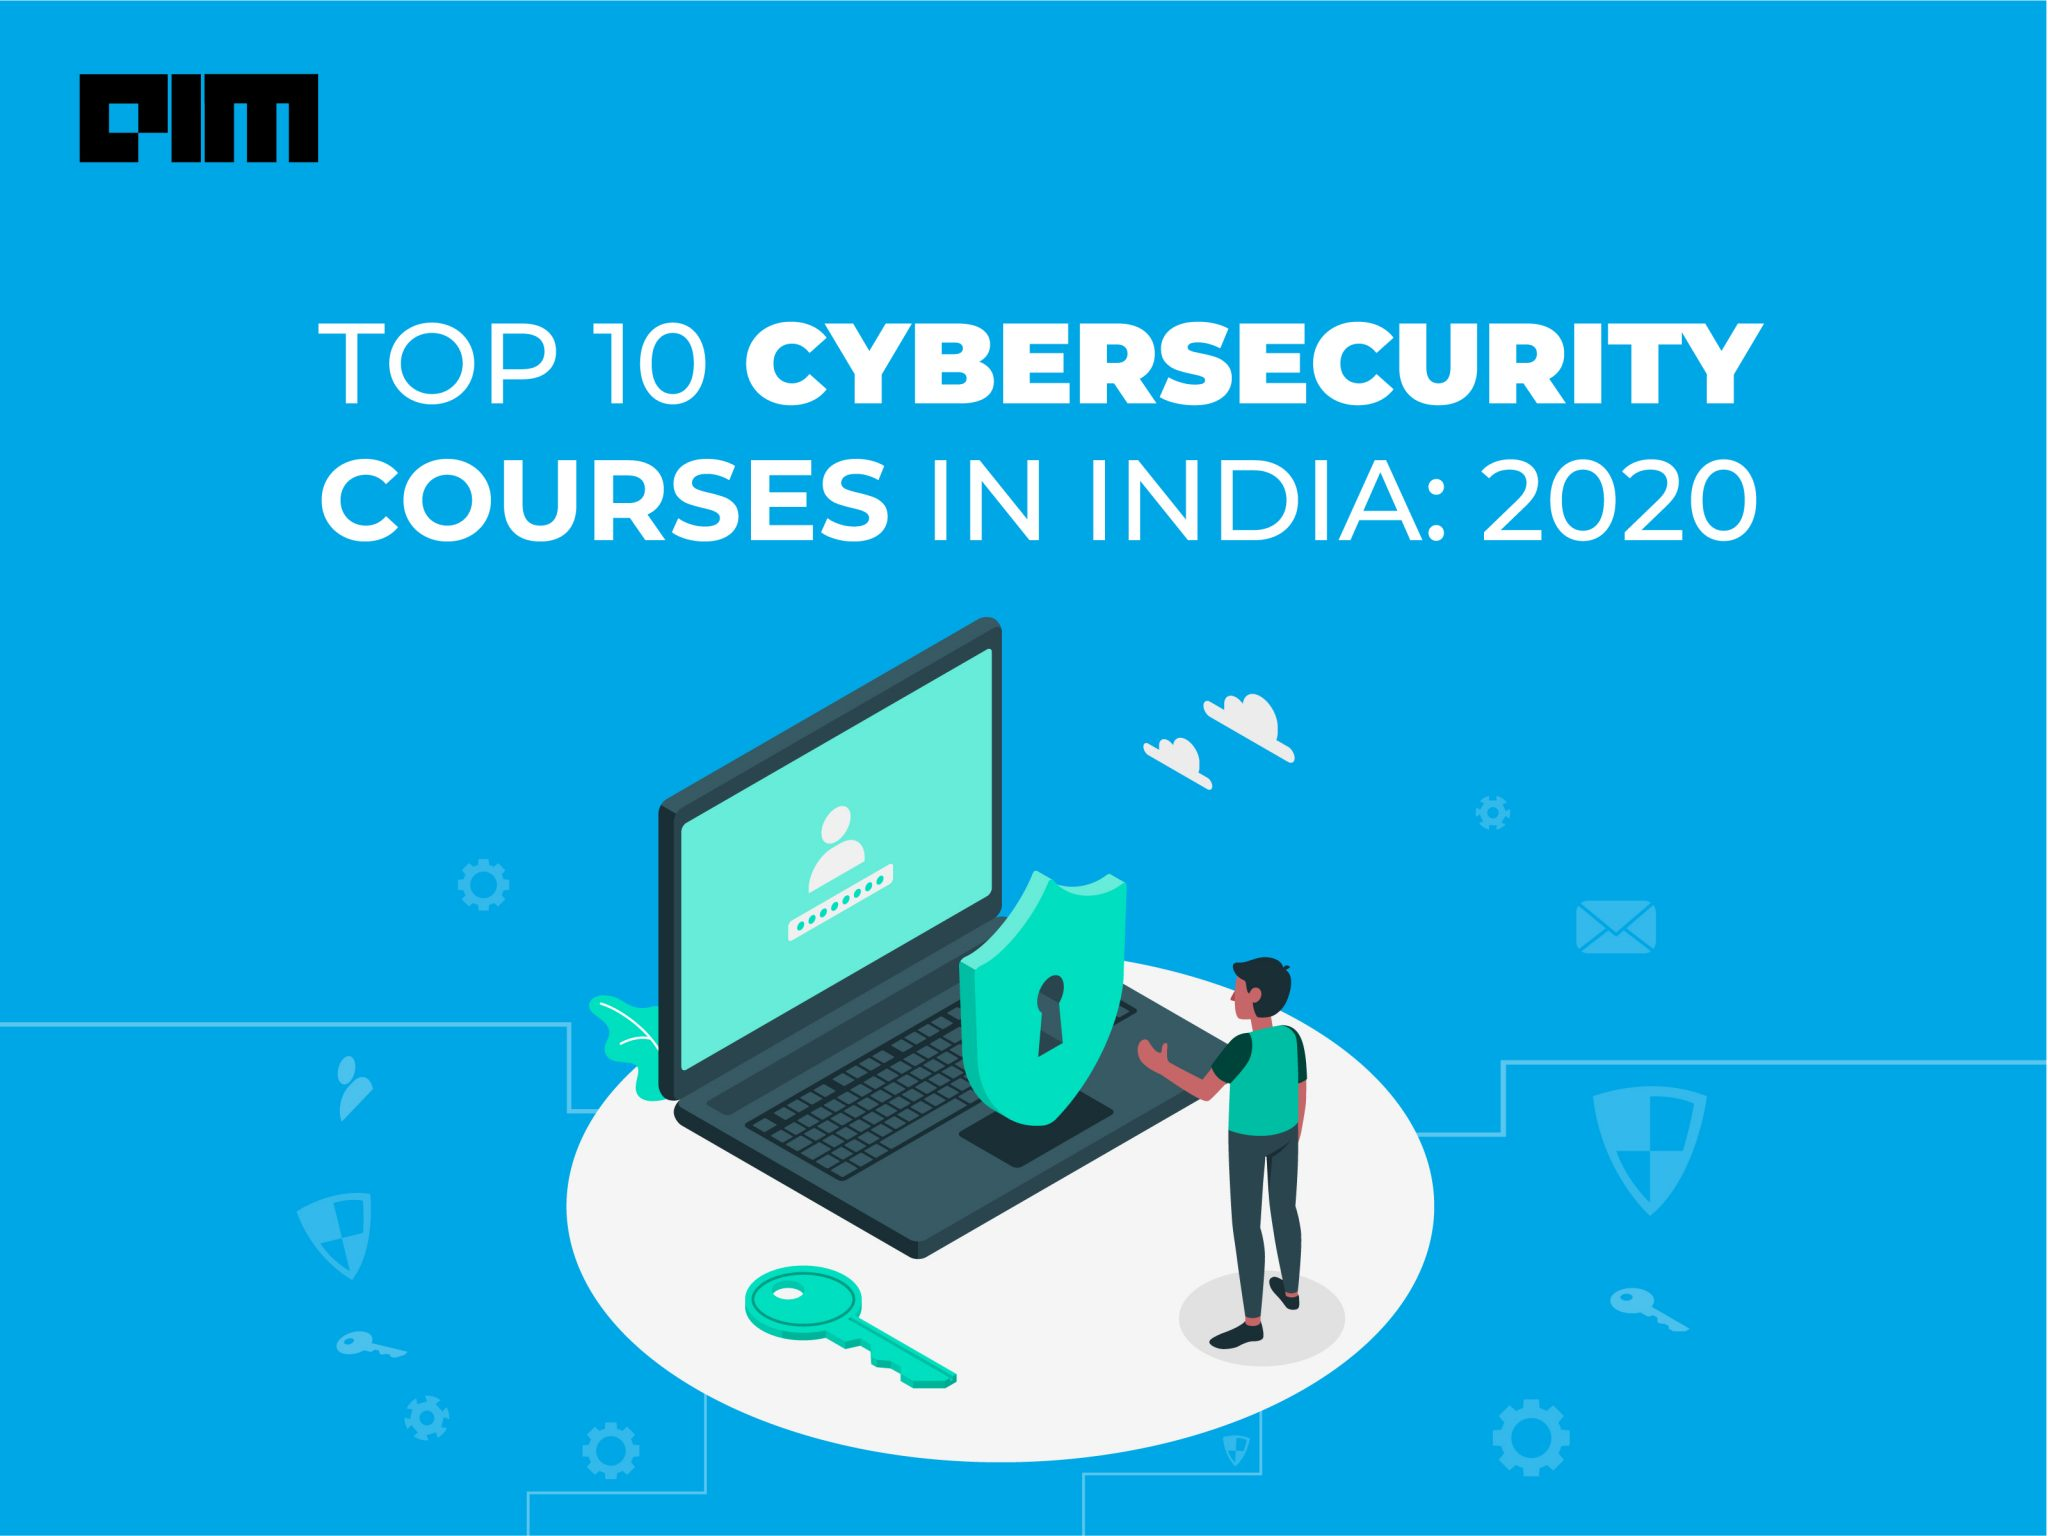 Top 10 Cybersecurity Courses In India Ranking 2020